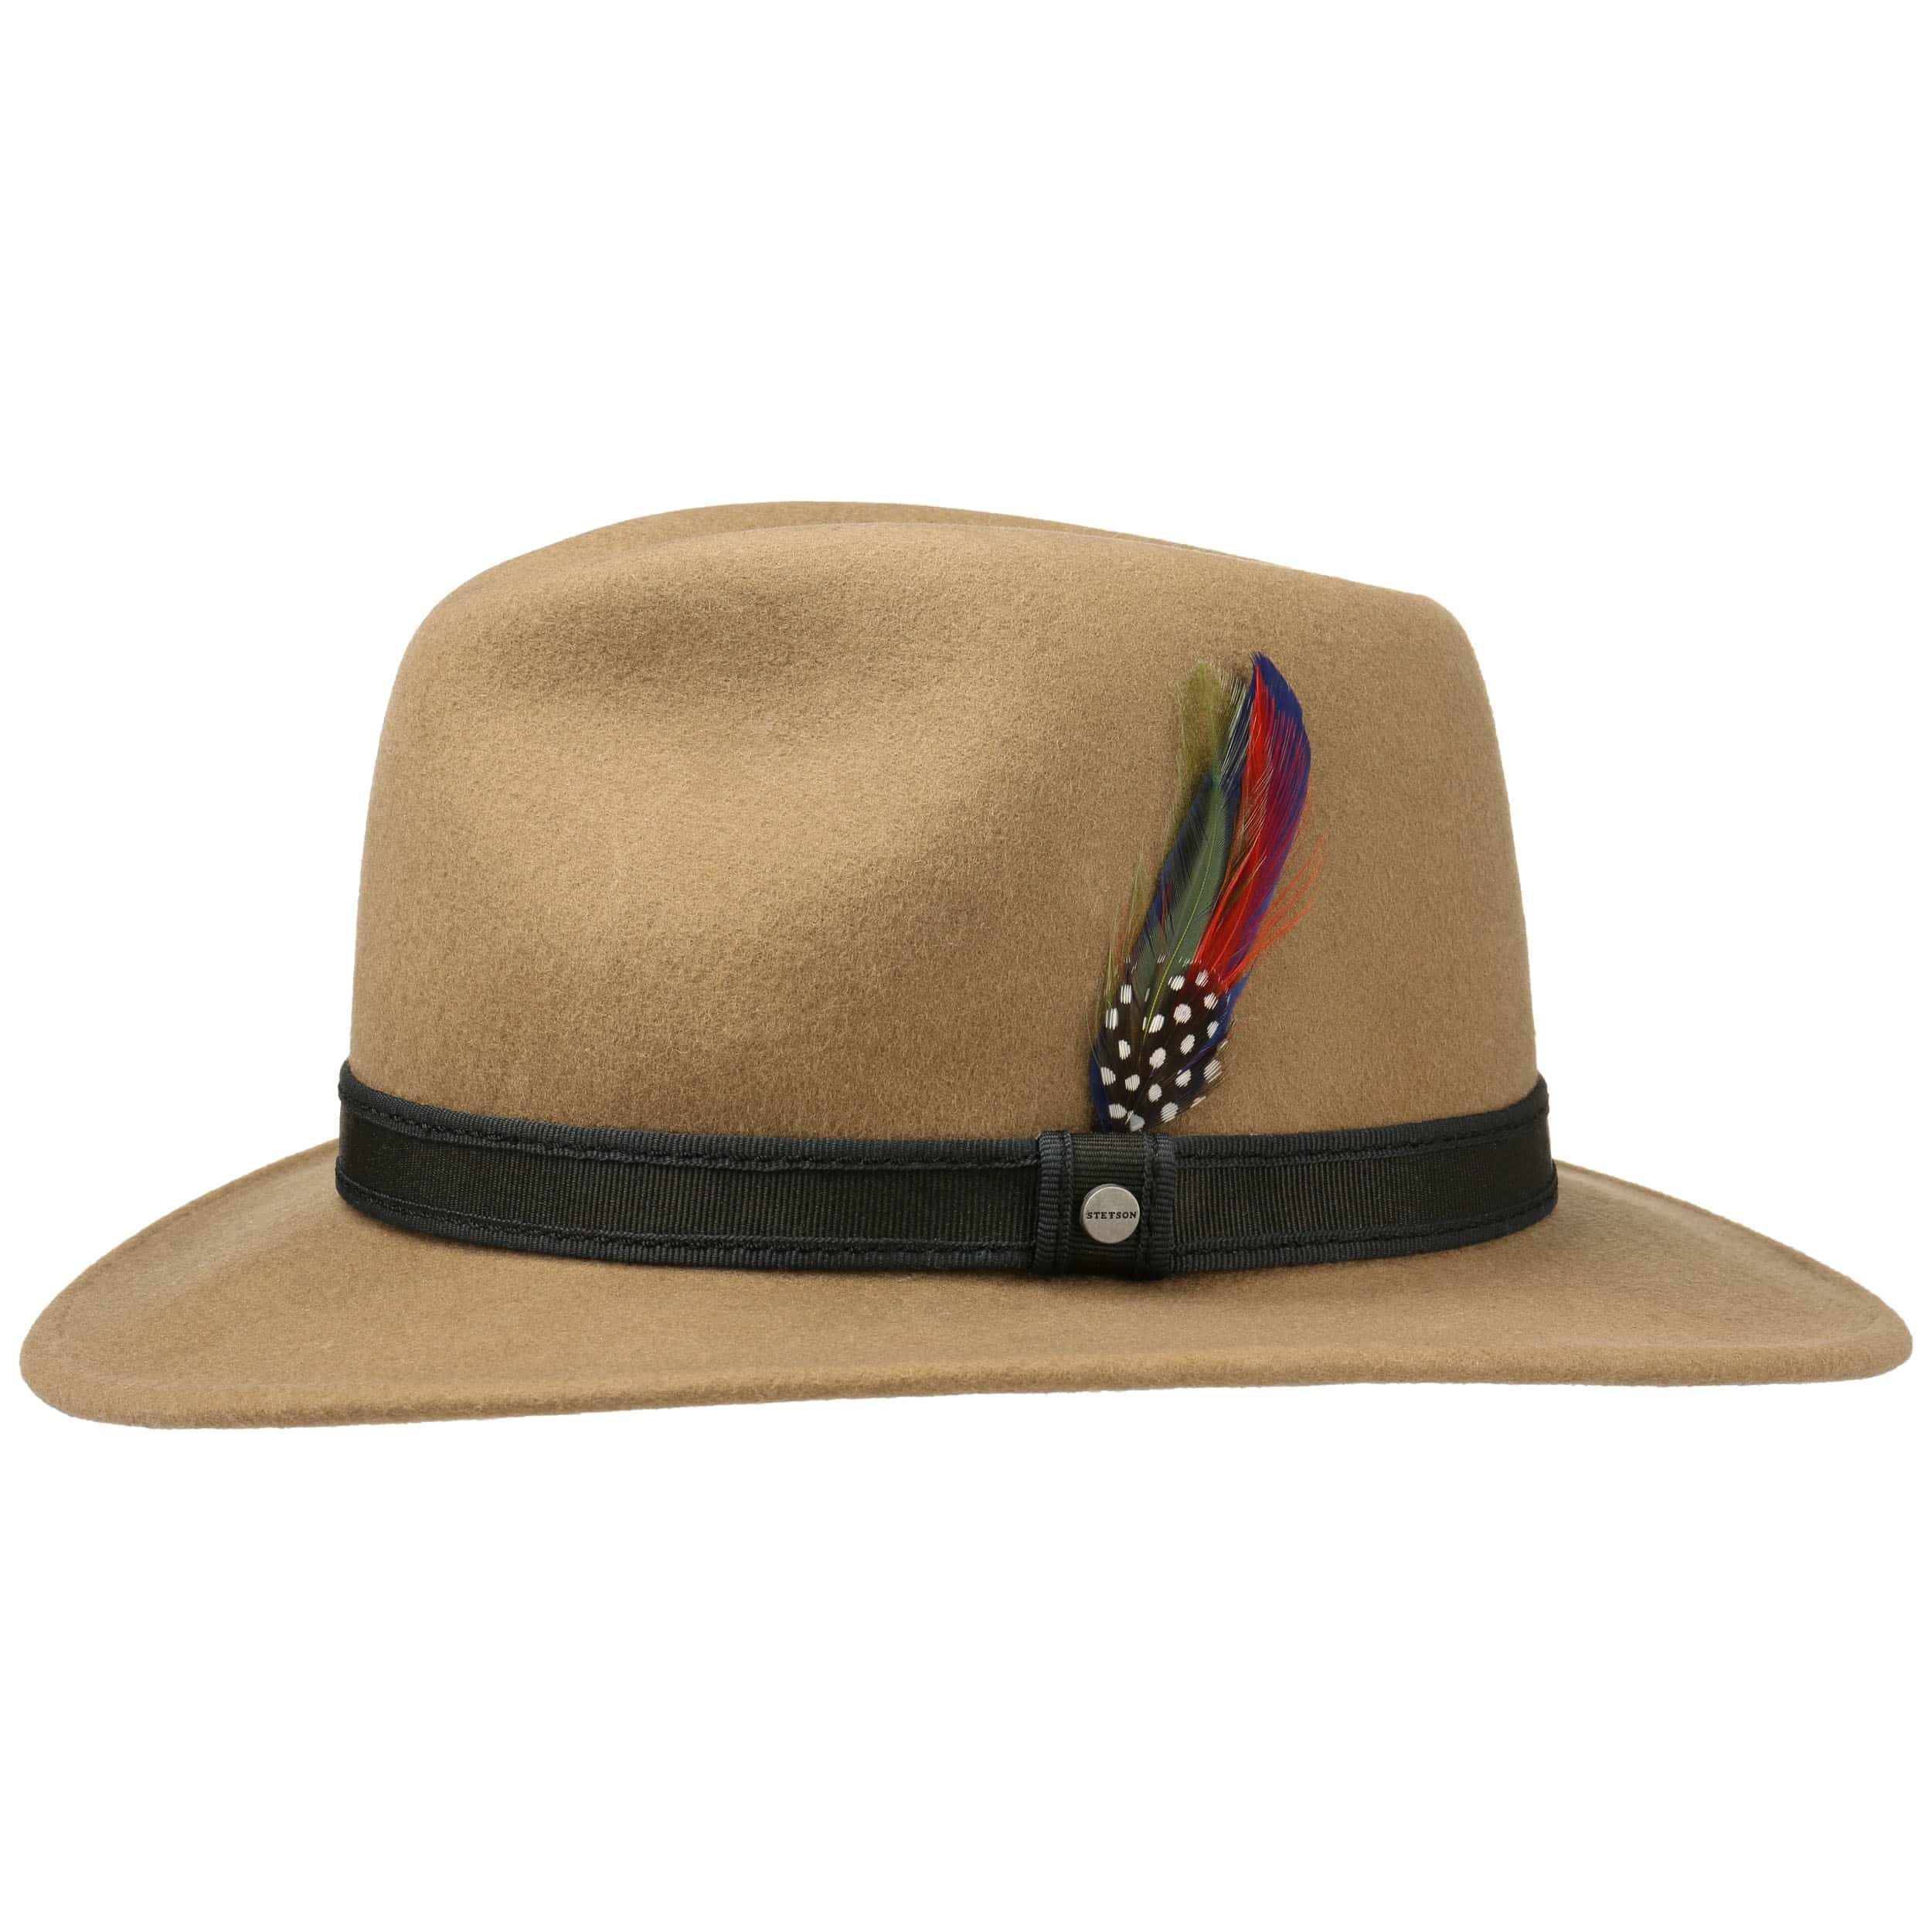 Buy Cheap Many Kinds Of Feather Trim Traveller Felt Hat by Stetson Felt hats Stetson Cheap Sale With Mastercard Outlet Official Site Cheap View Z8W3lETmw2